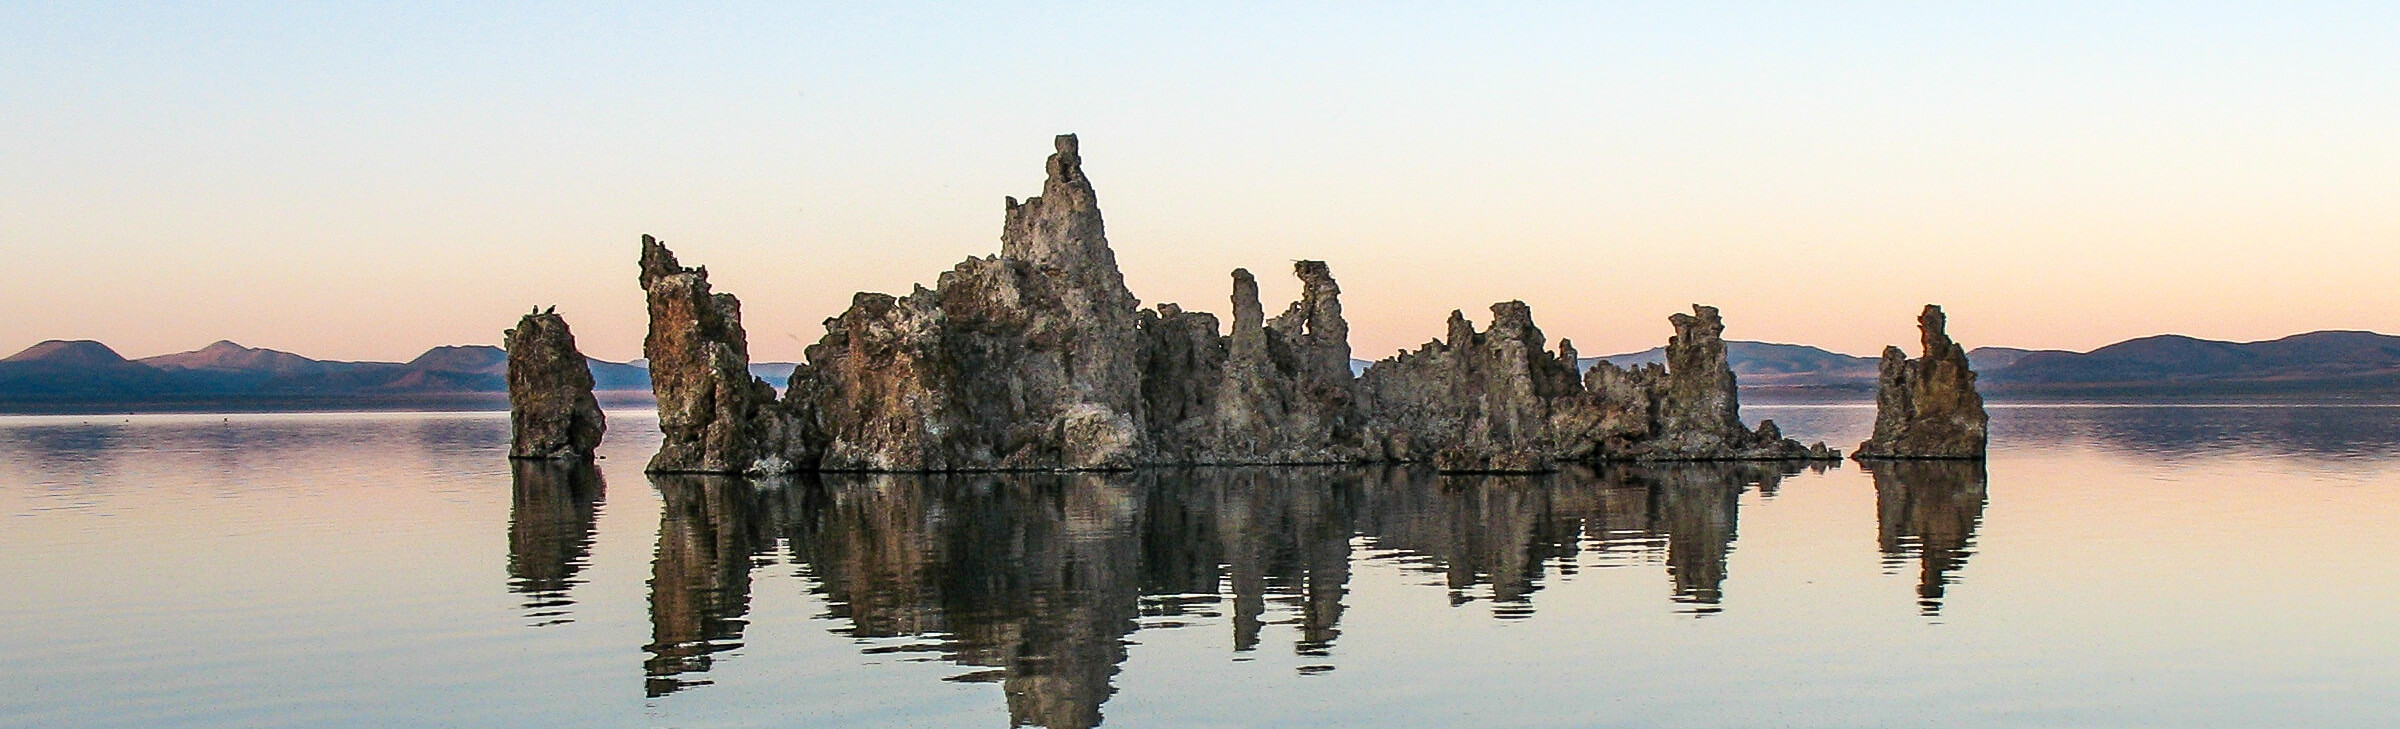 Tufa Towers Mono Lake